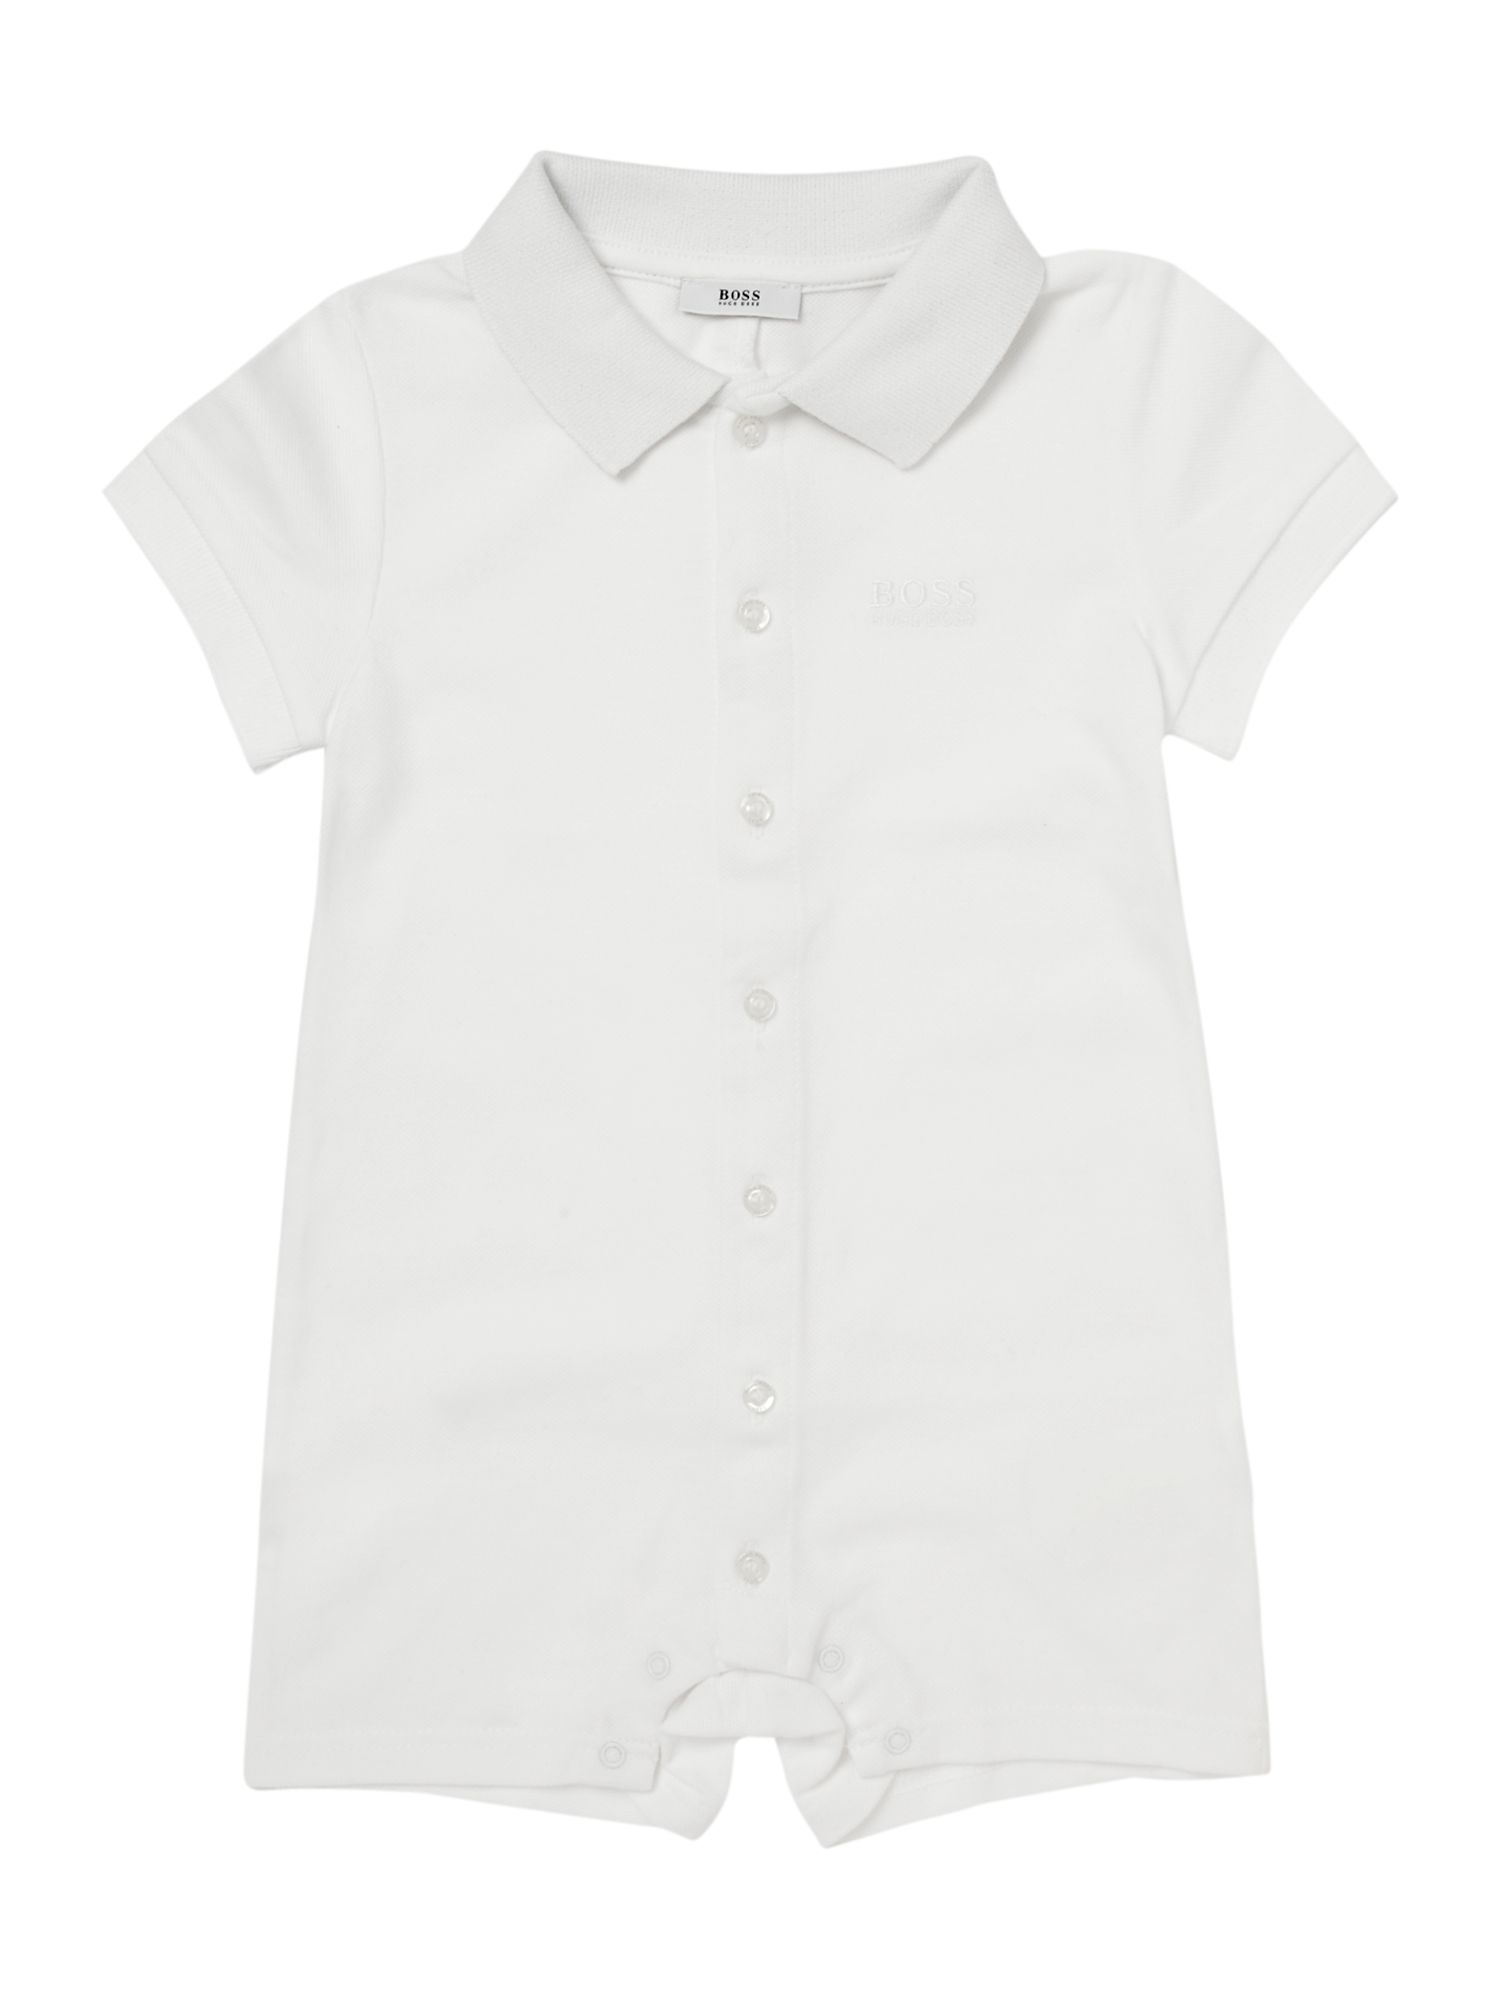 Boy`s cotton short sleeve all in one